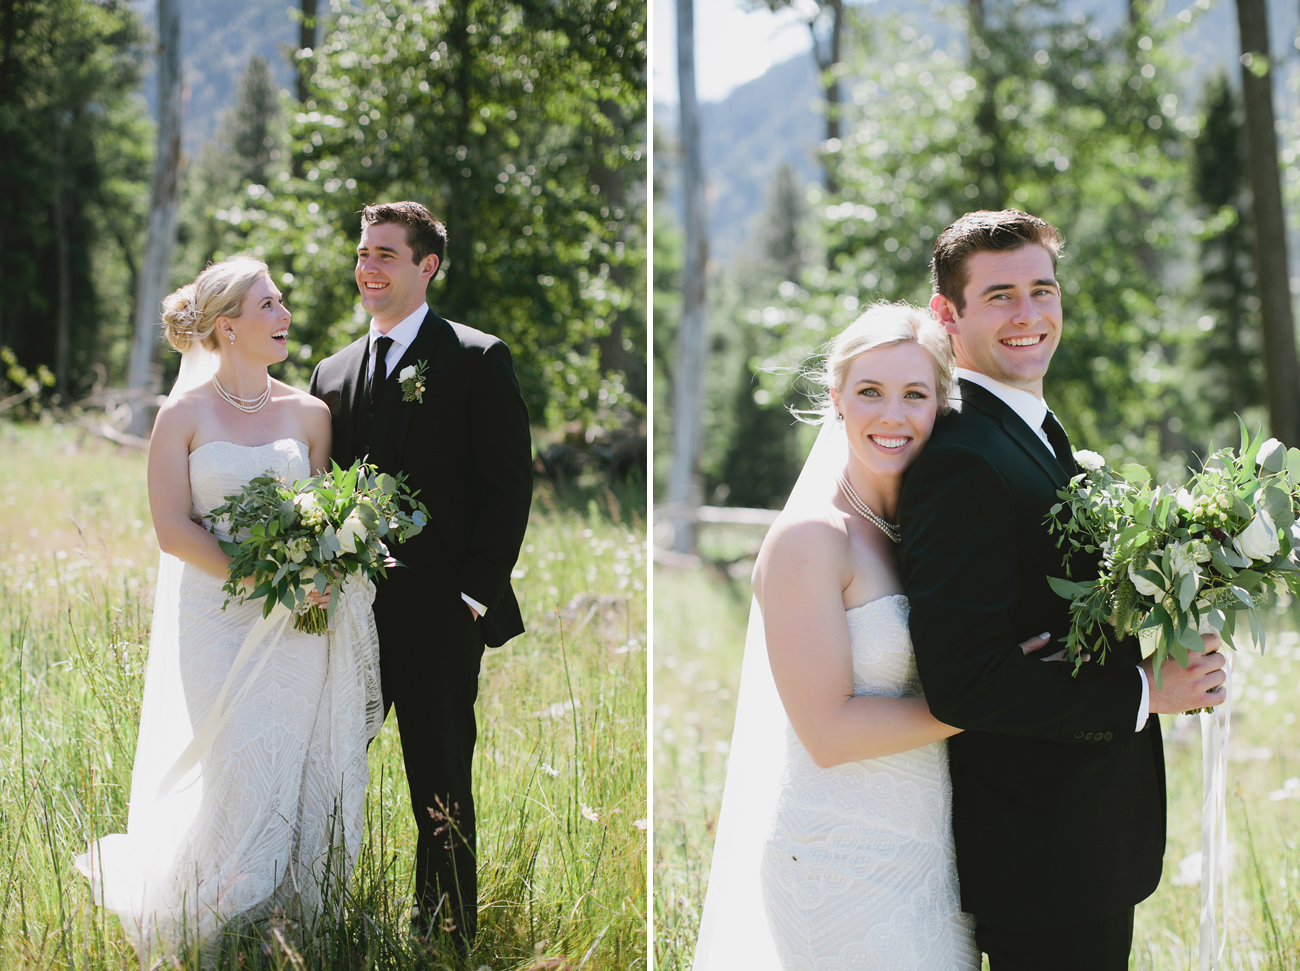 Eastern Oregon Lake Wallowa Wedding Photography by Ali Walker Walla Walla Wedding Photographer 034.JPG